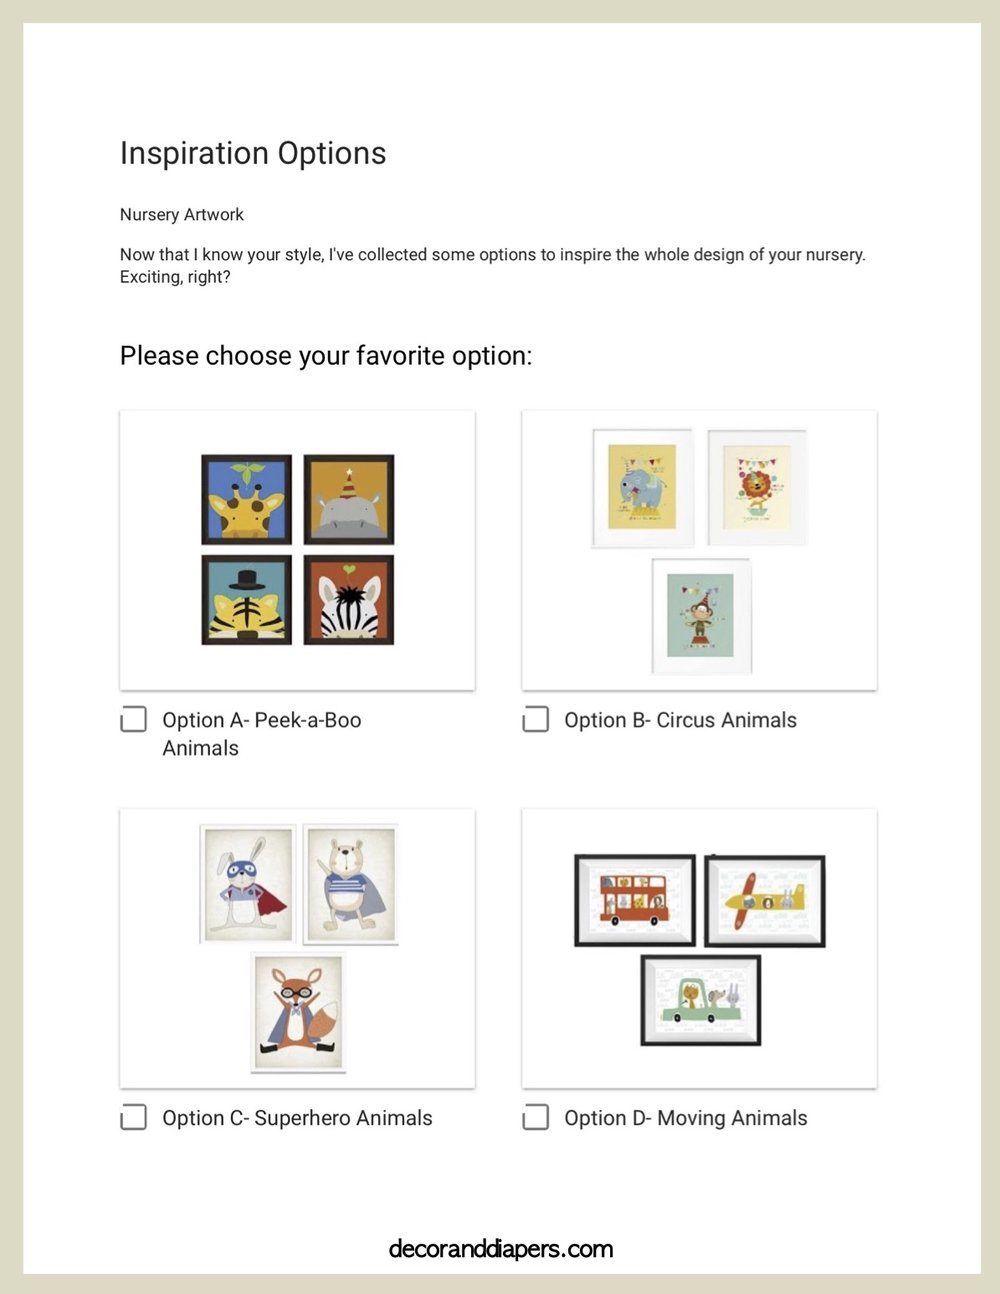 Inspiration Options - Choose your favorite option from the 4 decor options I'll offer you, based on your answers from my E-Design Style Guide. This will inspire your personal and unique design!